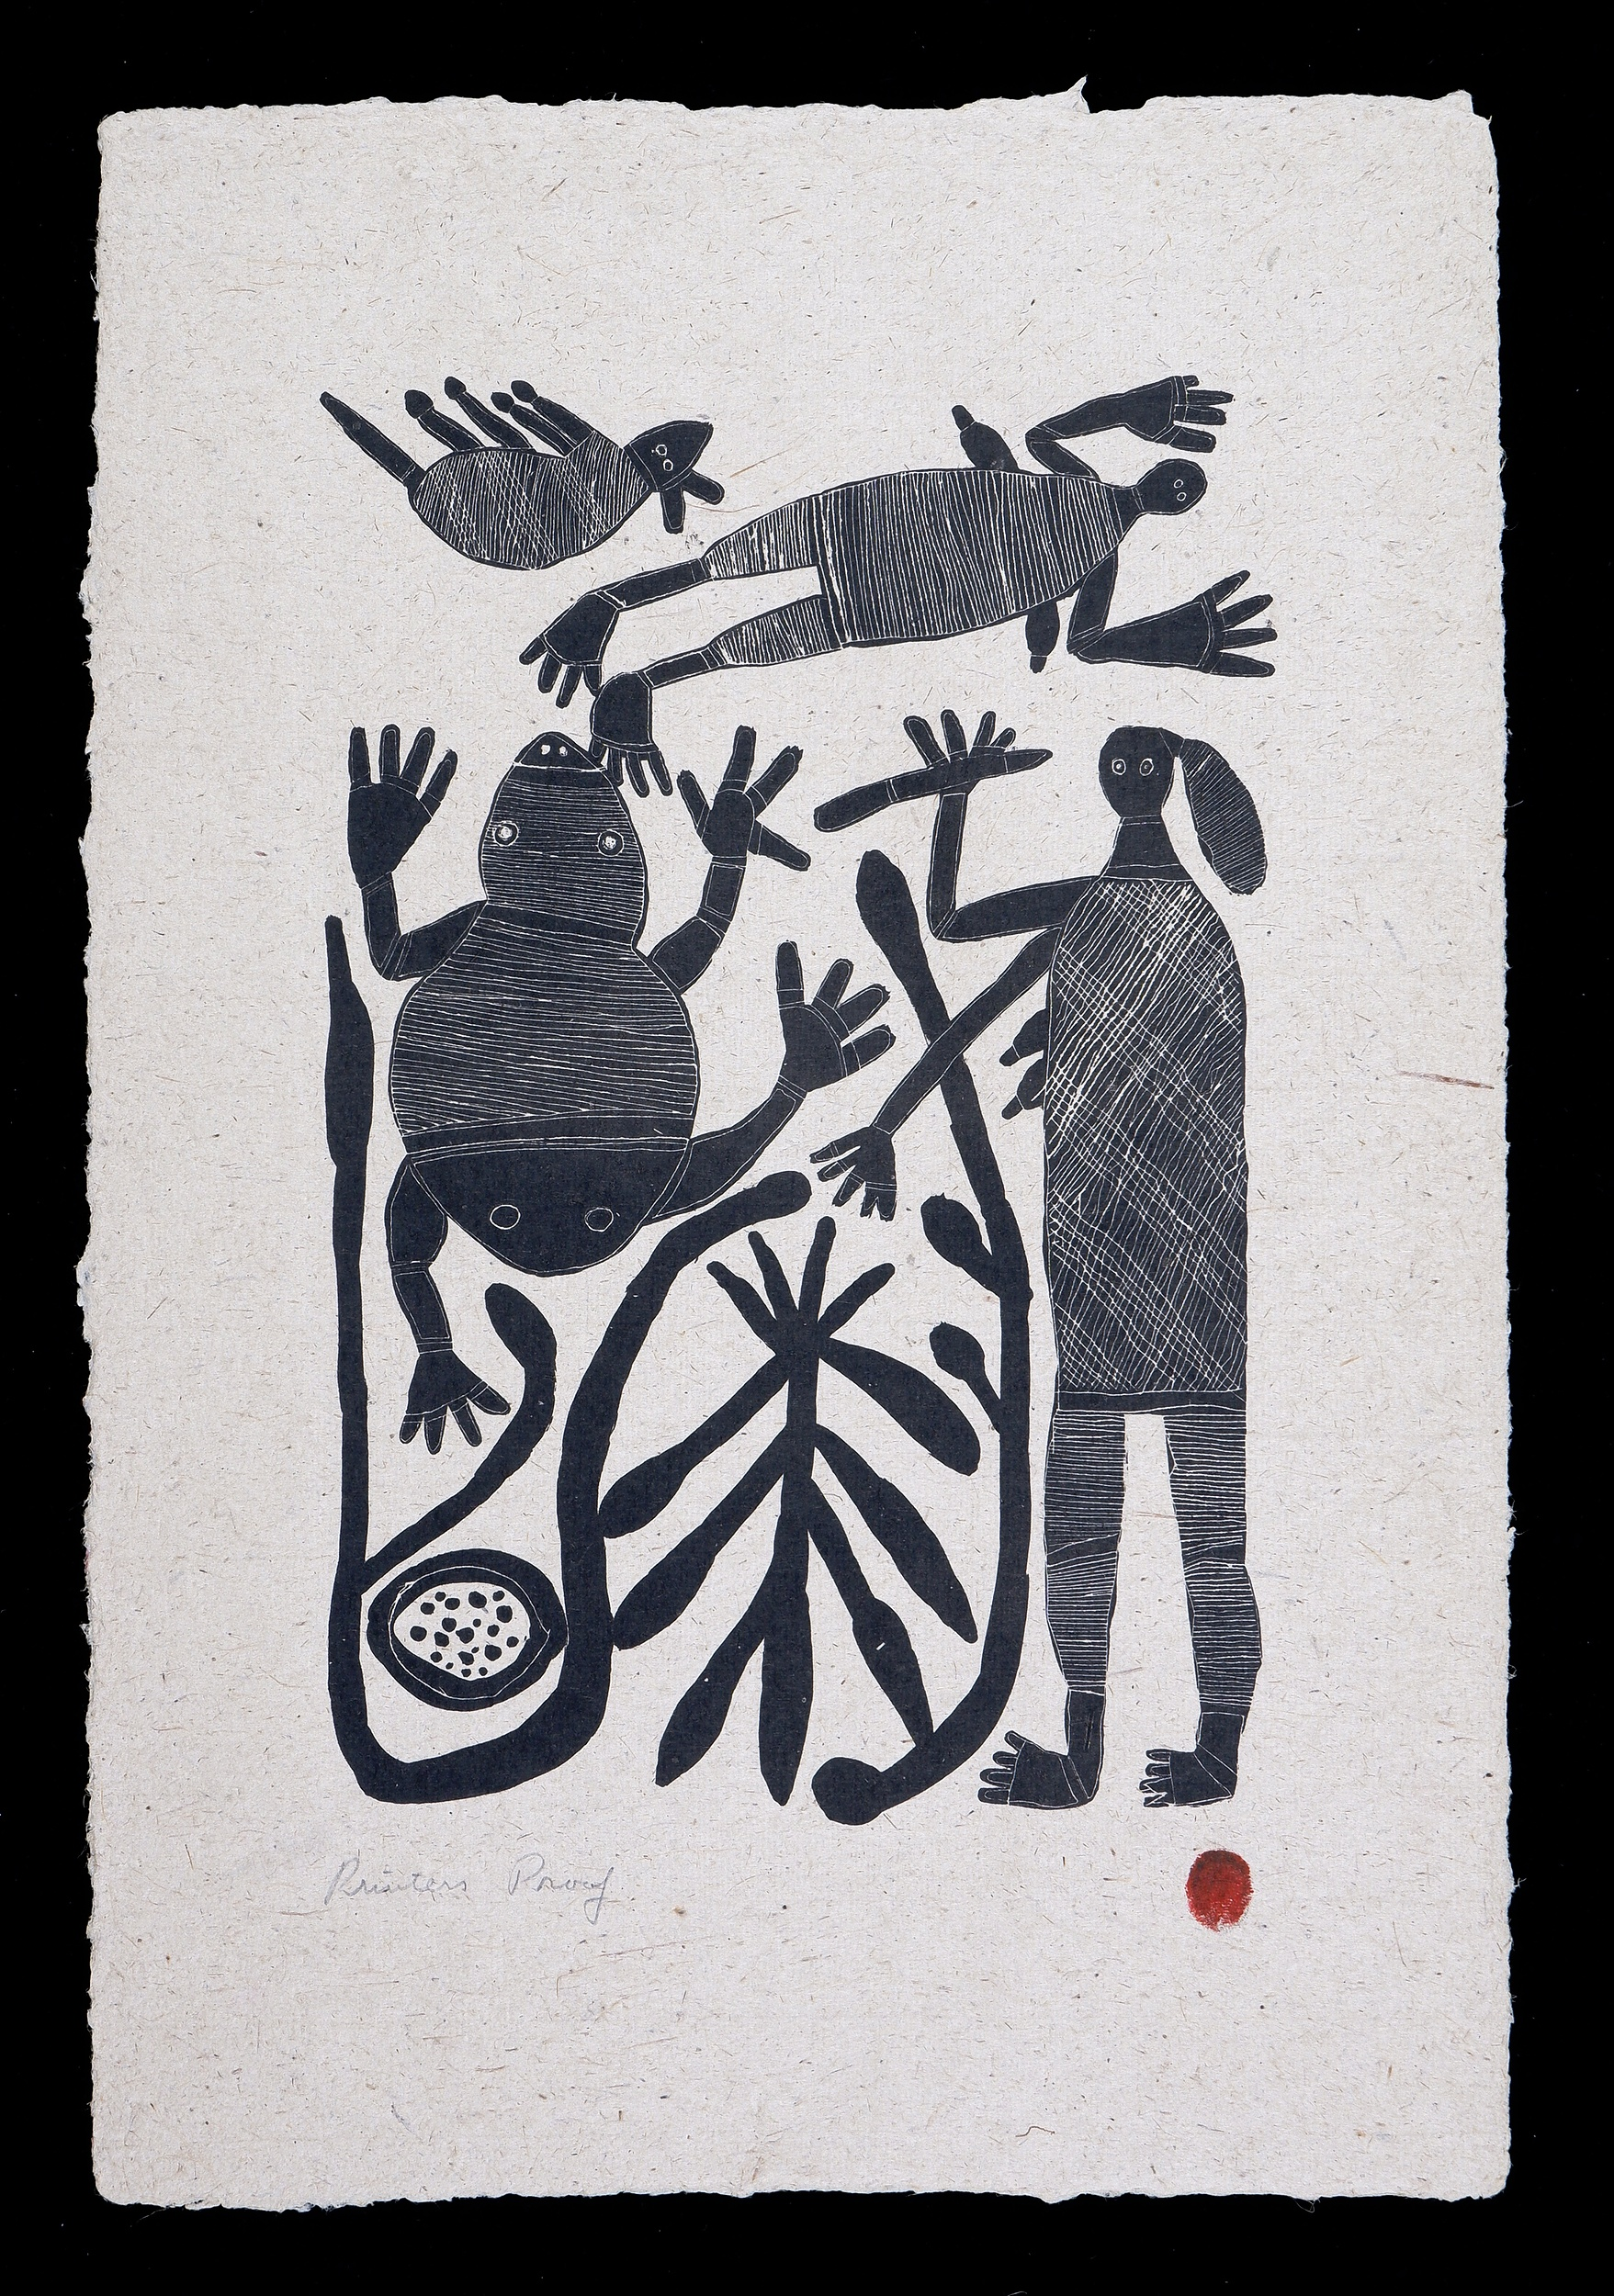 'England Bangala (1923-2001 Burarra/Gun-nartpa language group), Hunting Story 1984, Lithograph, Printers Proof from an Edition of 20, 41.5 x 20.5 cm (image size)'